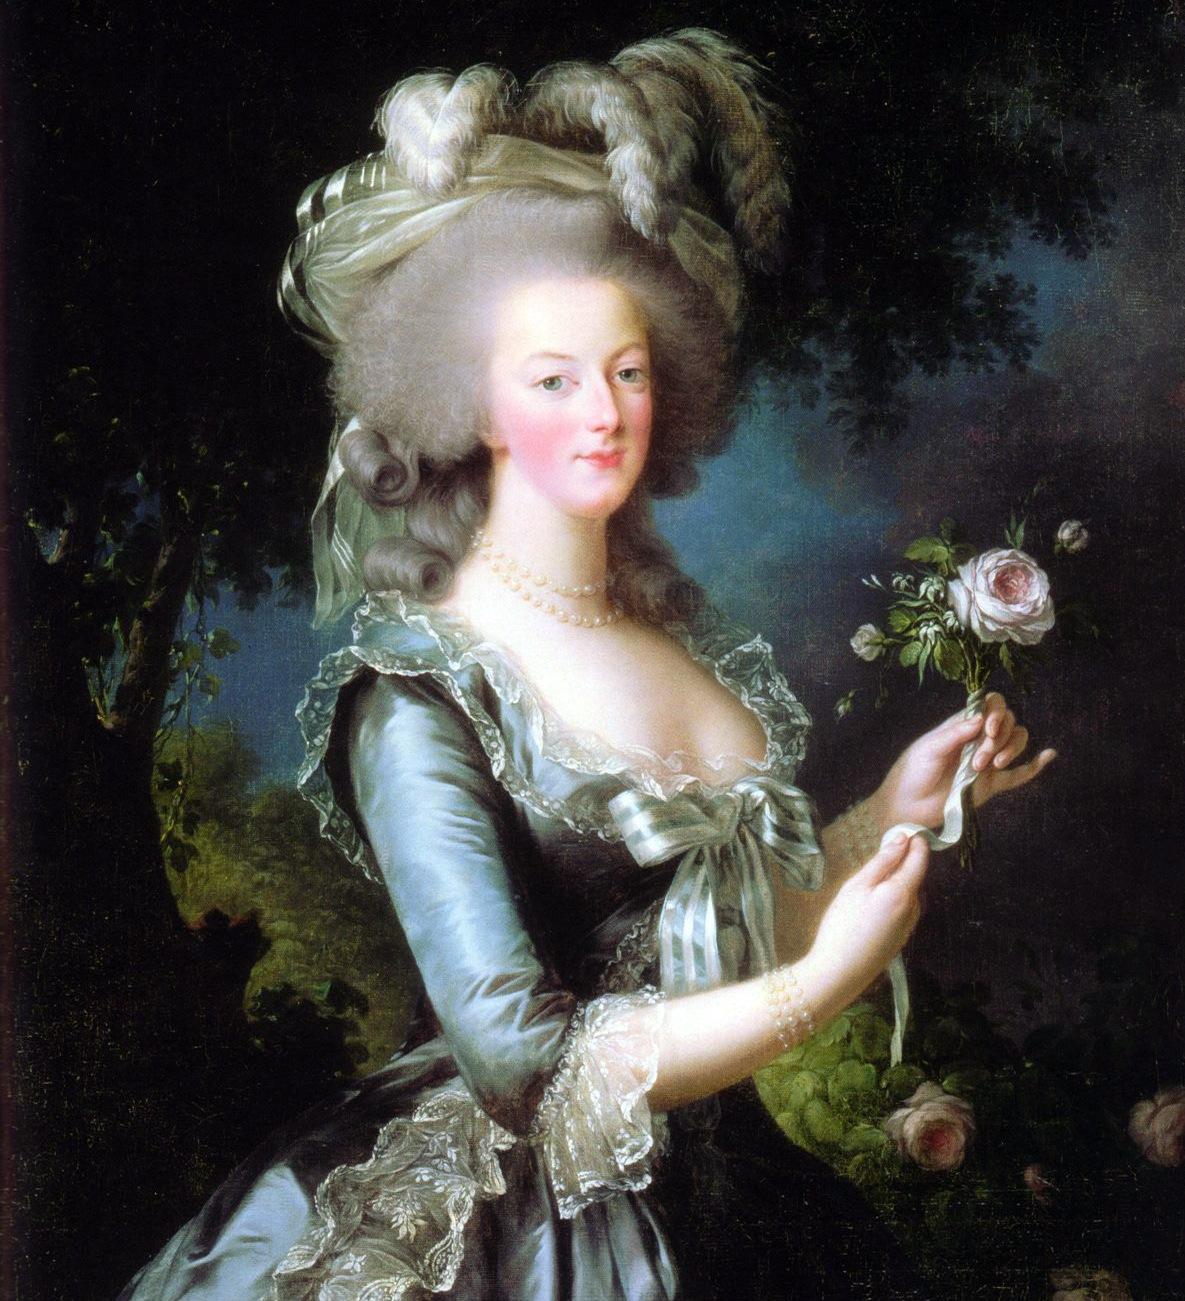 life and legacy of marie antoinette essay